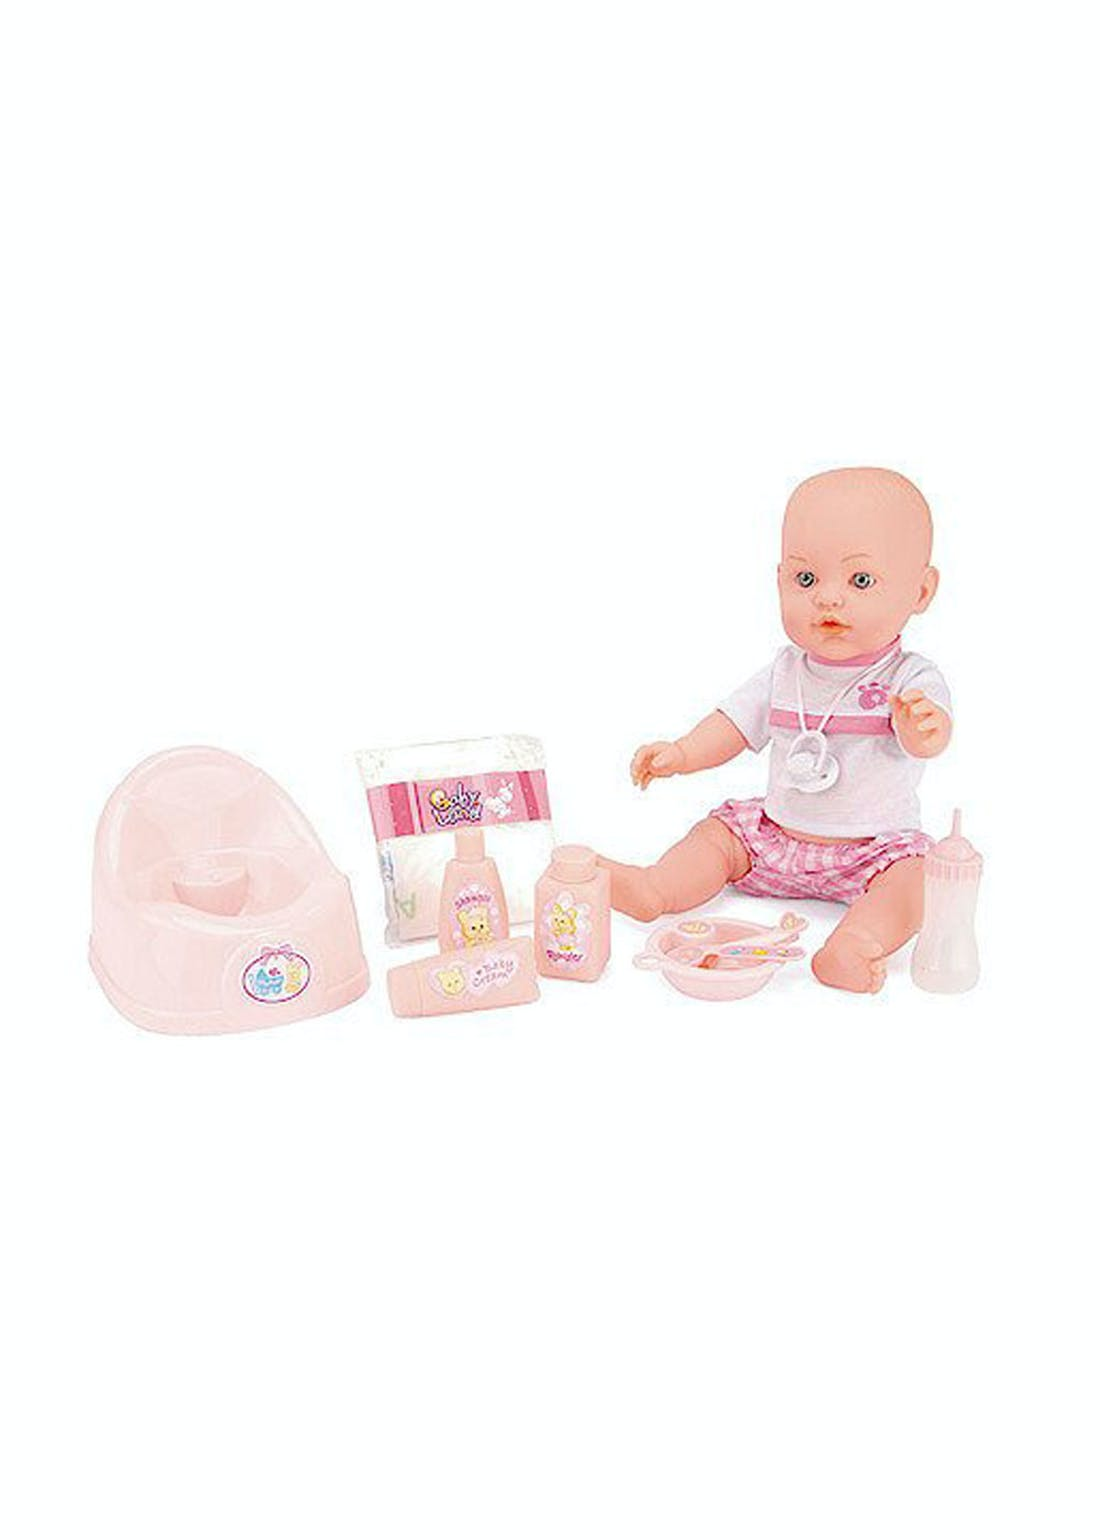 Baby Snuggles Drink and Wet Doll (41cm x 17.5cm x 10cm)